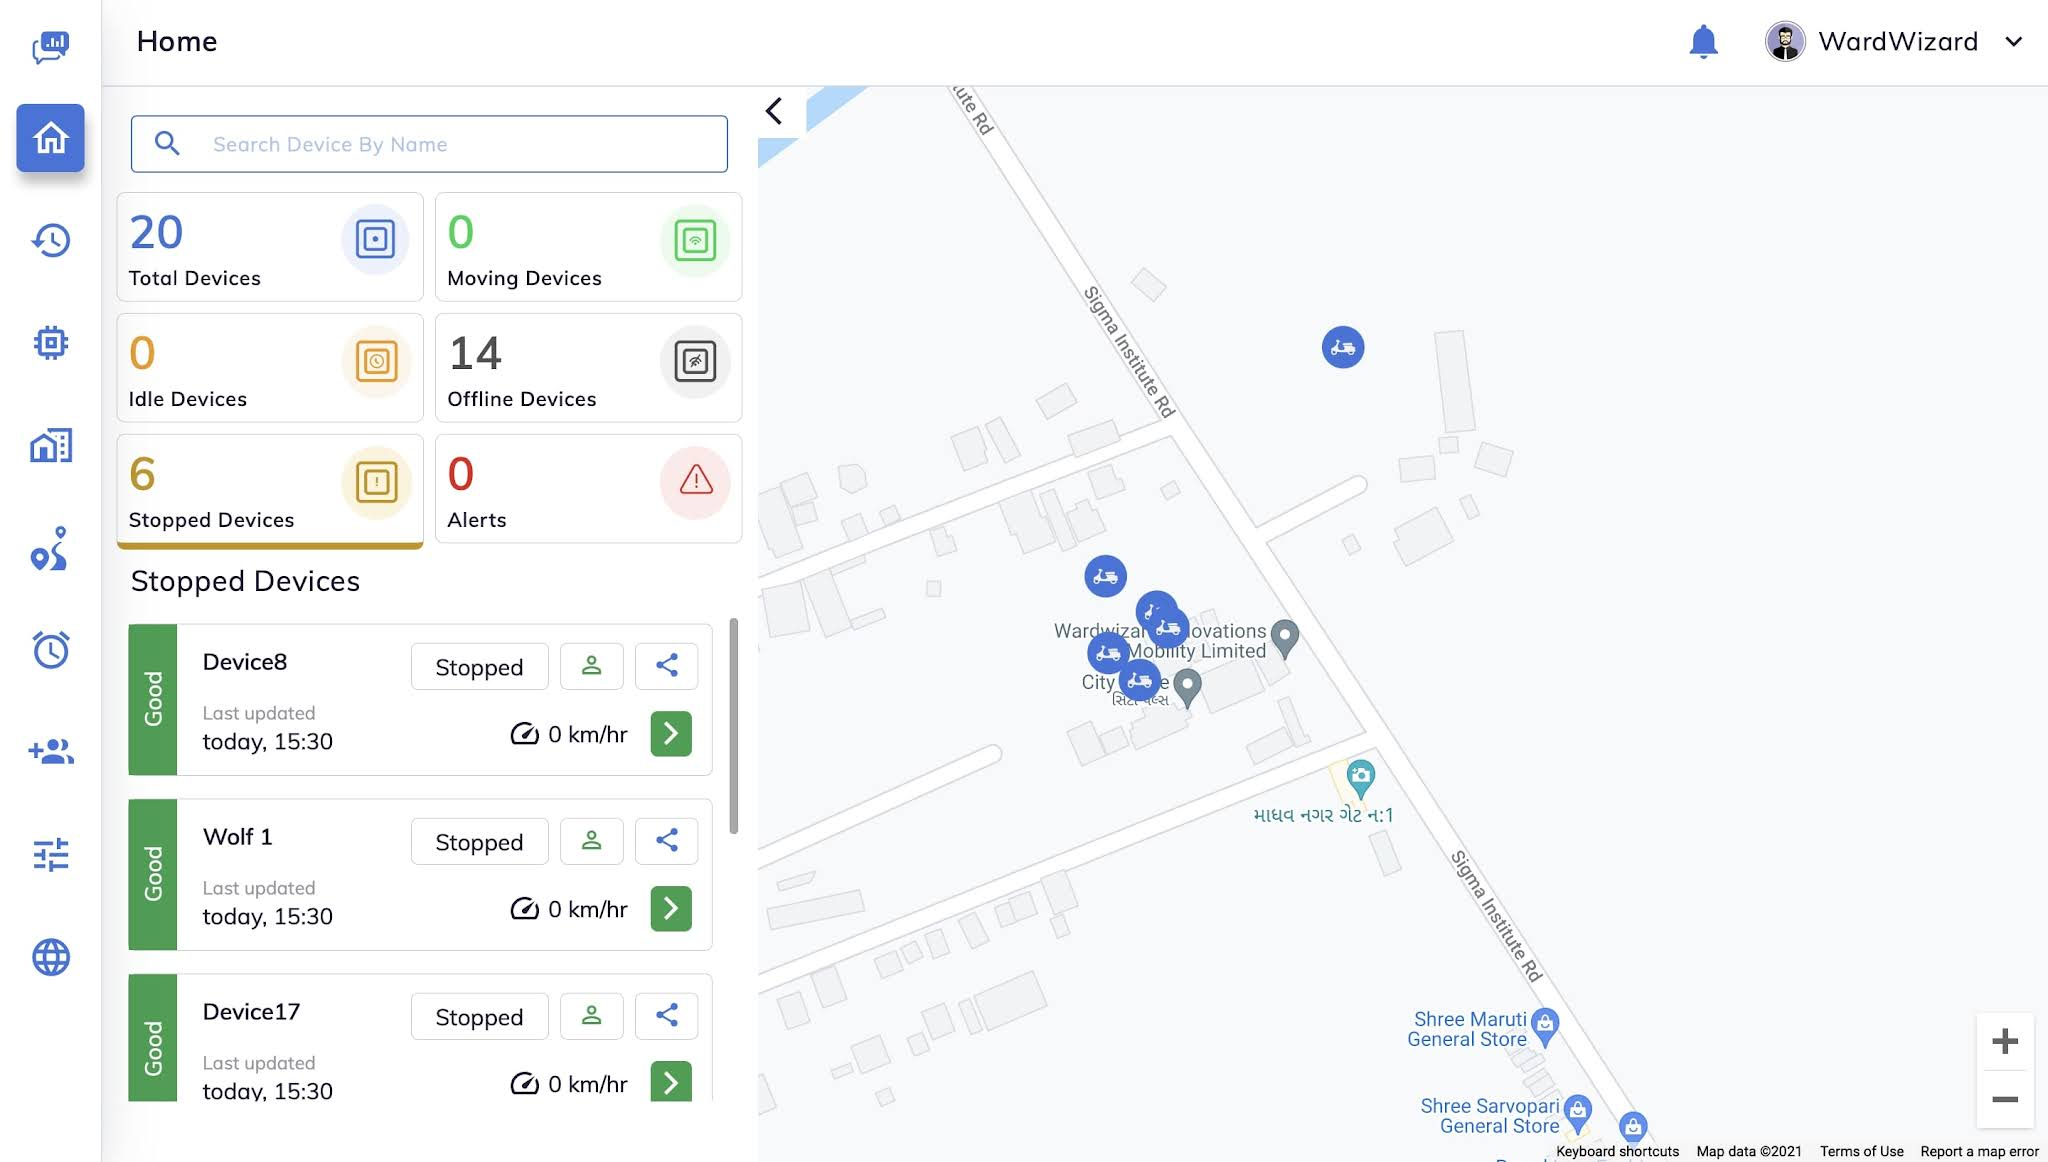 WardWizard Innovations and Mobility brings connected mobility to its riders by launching App'JOY E-CONNEC